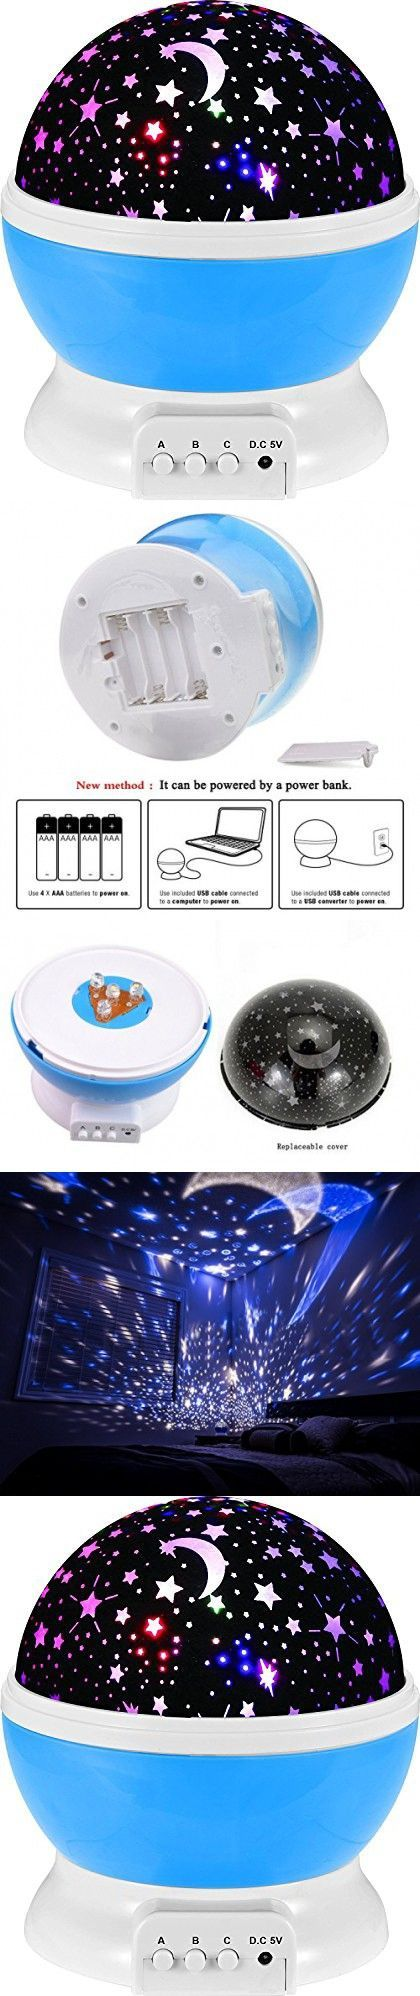 Bedroom planetarium projector for kids - Constellation Night Light Projector Lamp From Kalston Offers 4 Bright Colors With 360 Degree Moon Star Baby Bedroomkids